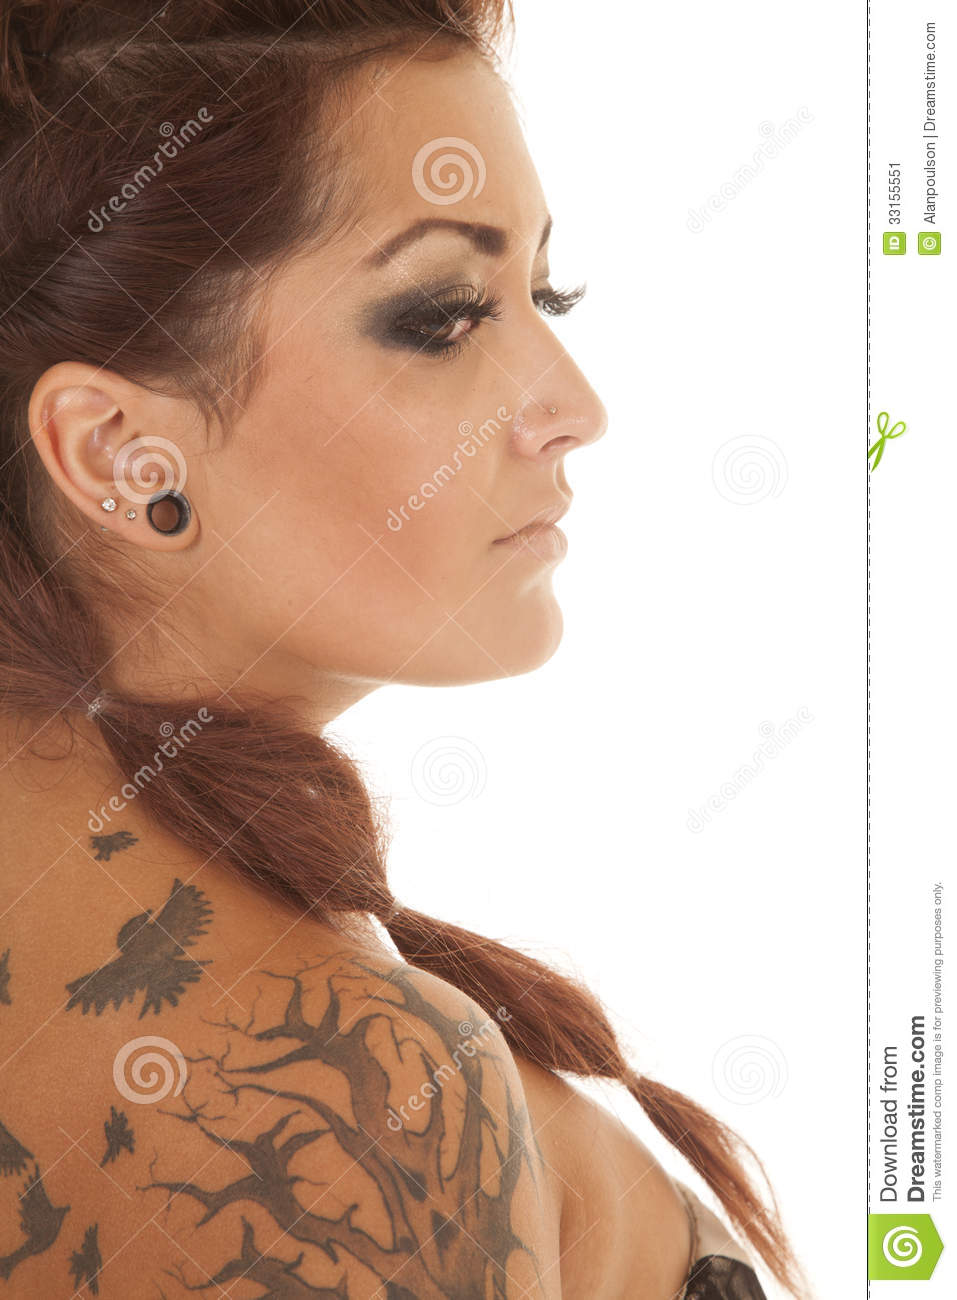 Woman tattoos head close side stock image image 33155551 for Tattoos on side of head